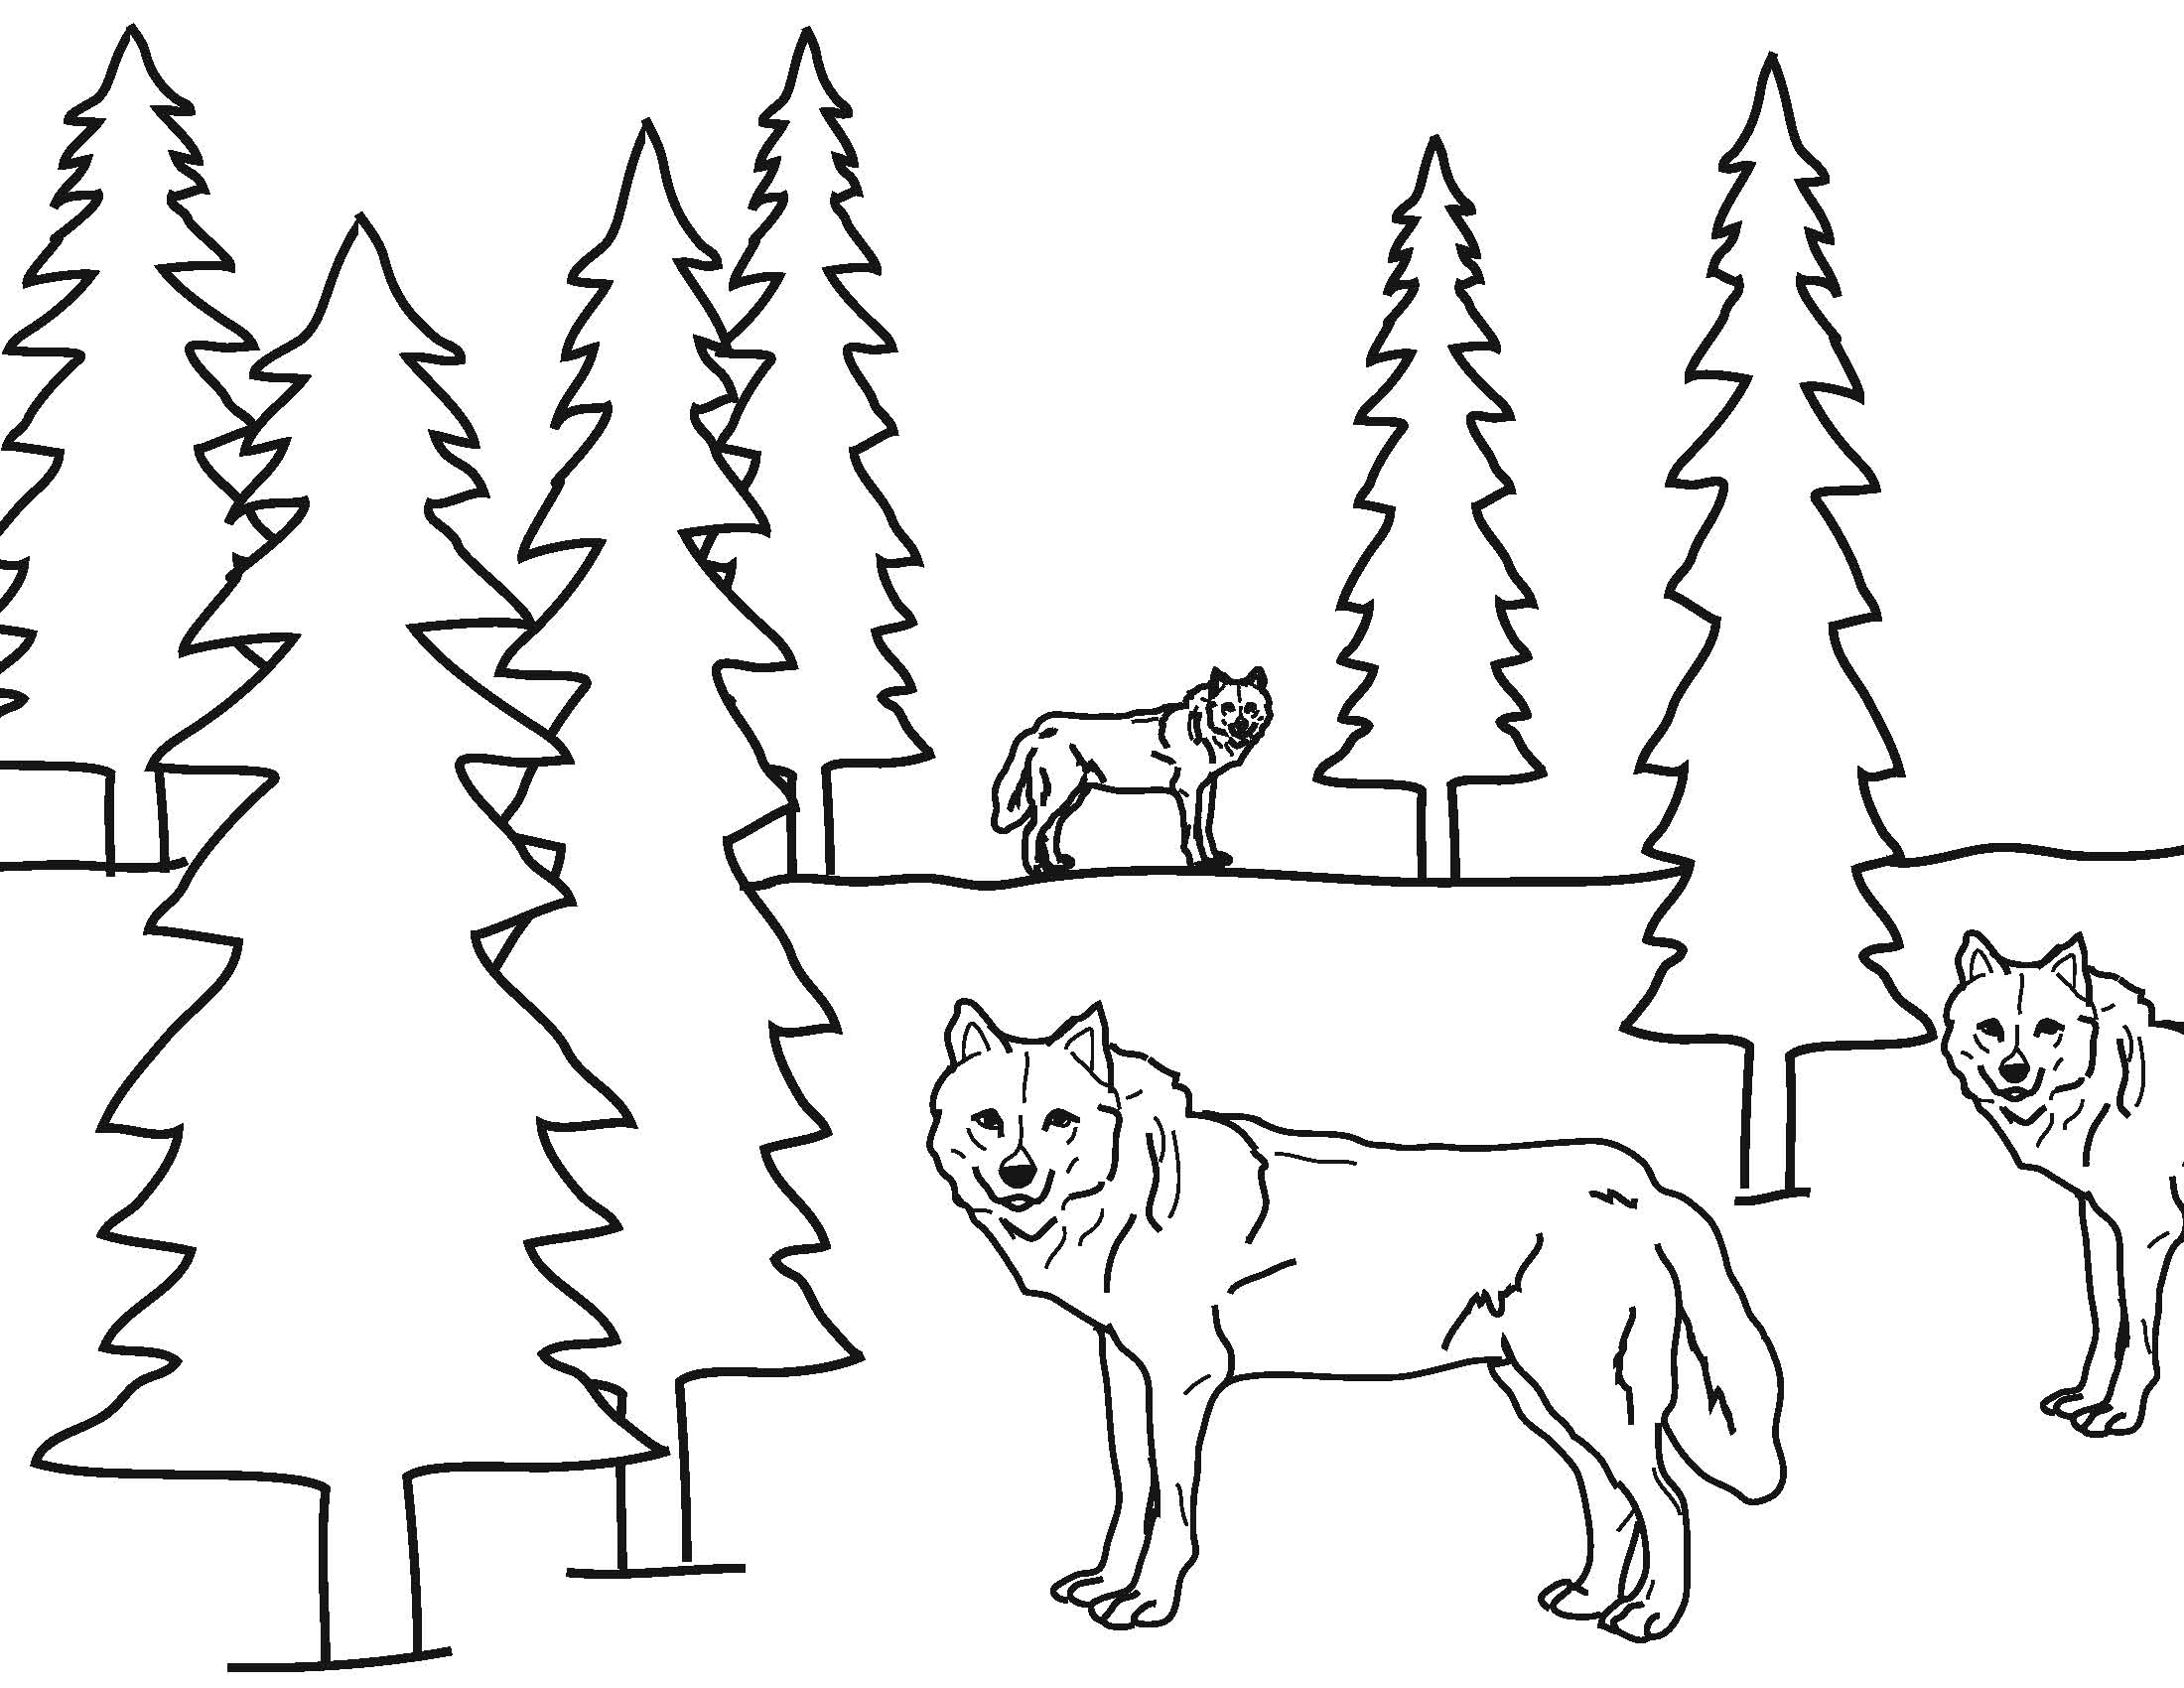 yellowstone coloring pages - photo#31